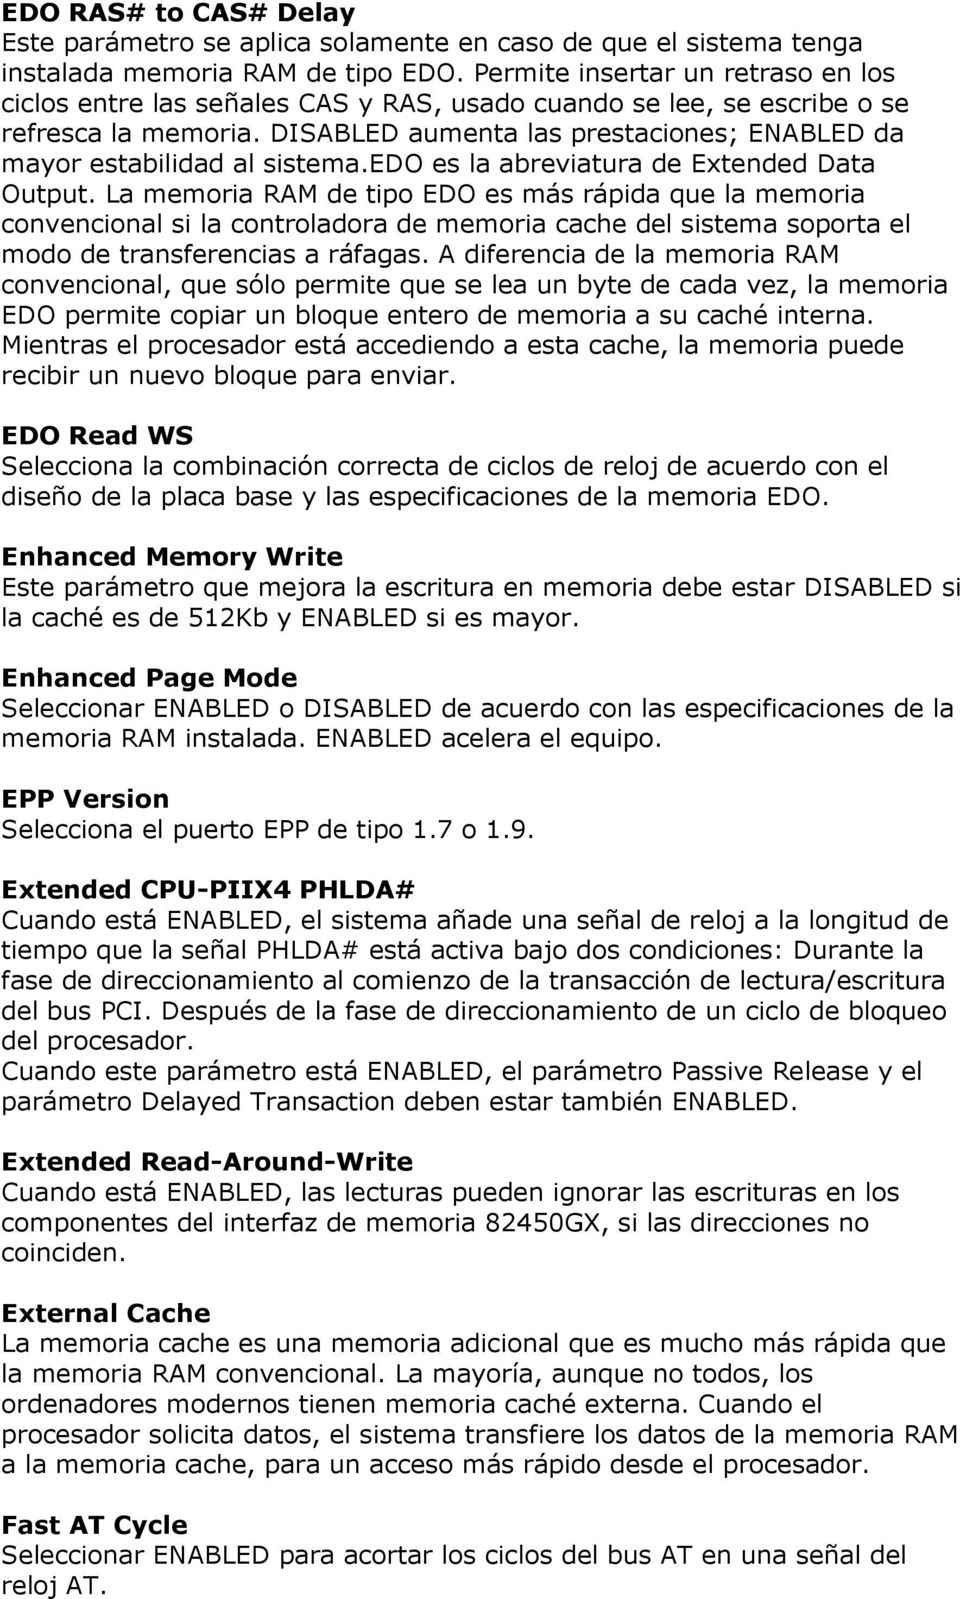 DISABLED aumenta las prestaciones; ENABLED da mayor estabilidad al sistema.edo es la abreviatura de Extended Data Output.